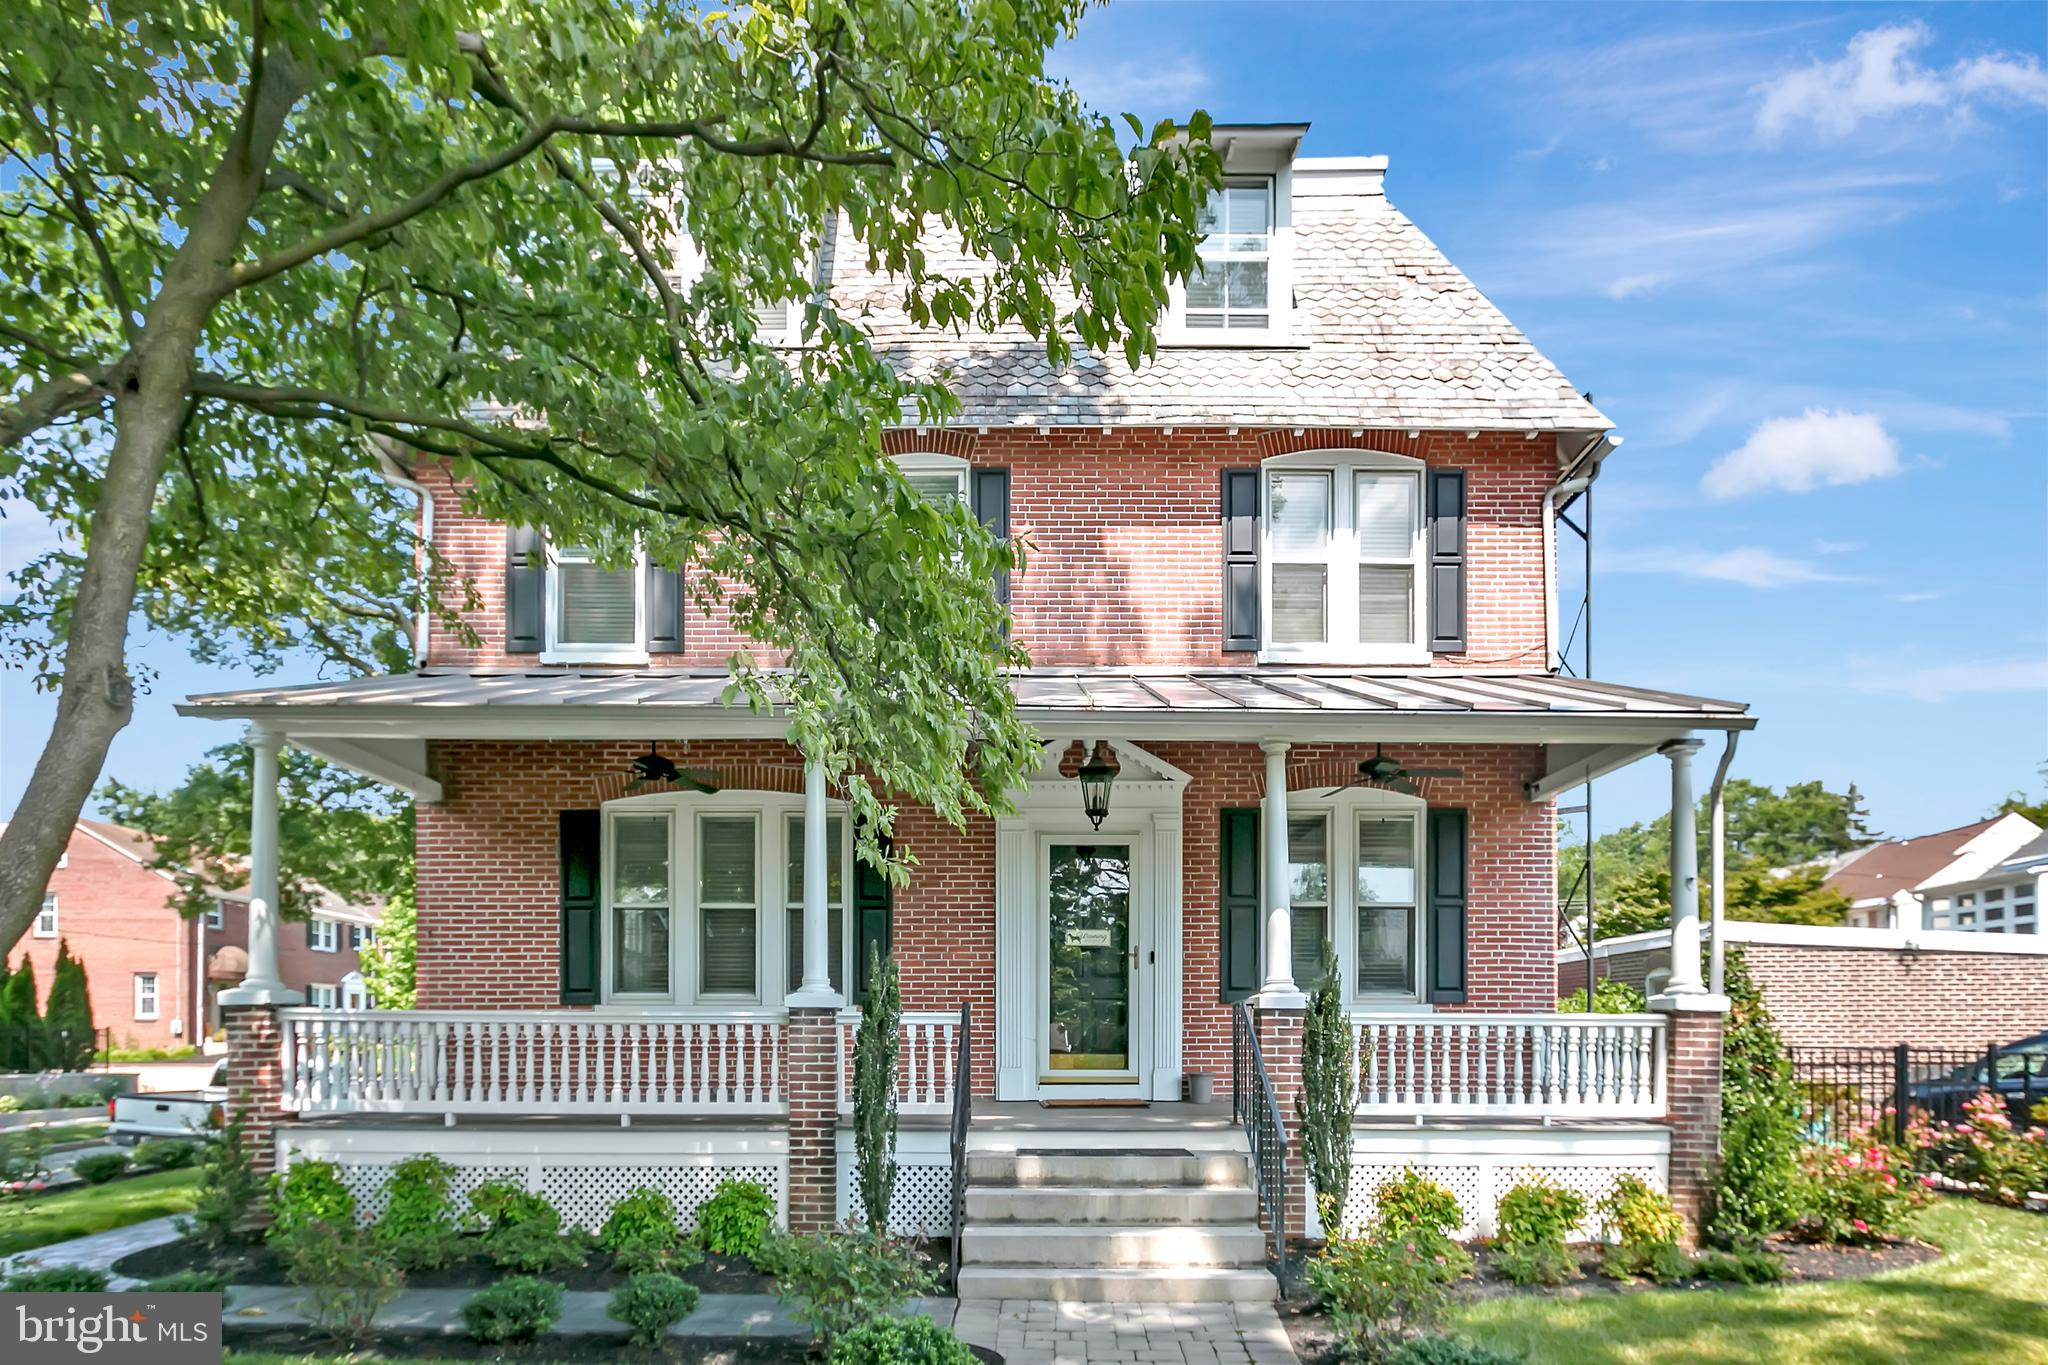 """This graceful Georgian three story brick home on a charming block of North Bancroft Parkway has been attentively cared for by the current owner.  The sweeping ceiling heights and stunning old-growth pine floors are indicative of the era of the home and the quality of construction that is unrivaled by today's standards.  The front foyer, complete with a cozy fireplace, would serve well as a library, sitting room or office space.  The airy great room is generous and allows for plenty of versatility as to its use, with gorgeous built-ins flanking the front triple windows, which flood the room with natural light.  The dining room can accommodate a large gathering and is conveniently just off of the spacious kitchen, fabulously outfitted with the fixtures and amenities that any serious cook would appreciate.  The entire kitchen has been carefully and professionally renovated and reconfigured and features higher-end stainless steel appliances, including a 48"""" Thermador gas range.  The rear enclosed porch completes the first floor and is a great space for casual morning coffee or a relaxing evening at home. On the second level you will find the primary bedroom suite, which includes an en suite laundry room and full bathroom, complete with dual, separate vanities, marble tile, a soaking tub, and an oversized shower.  Two additional spacious bedrooms are on this level.  On the third floor are three more bedrooms and another full bathroom with a plethora of space. The owner has put great care and attention into the hardscaping, retaining walls and landscaping on the grounds of the property, giving this home wonderful curb appeal. With plenty of living space and amenities for the modern buyer, this home is not to be missed."""